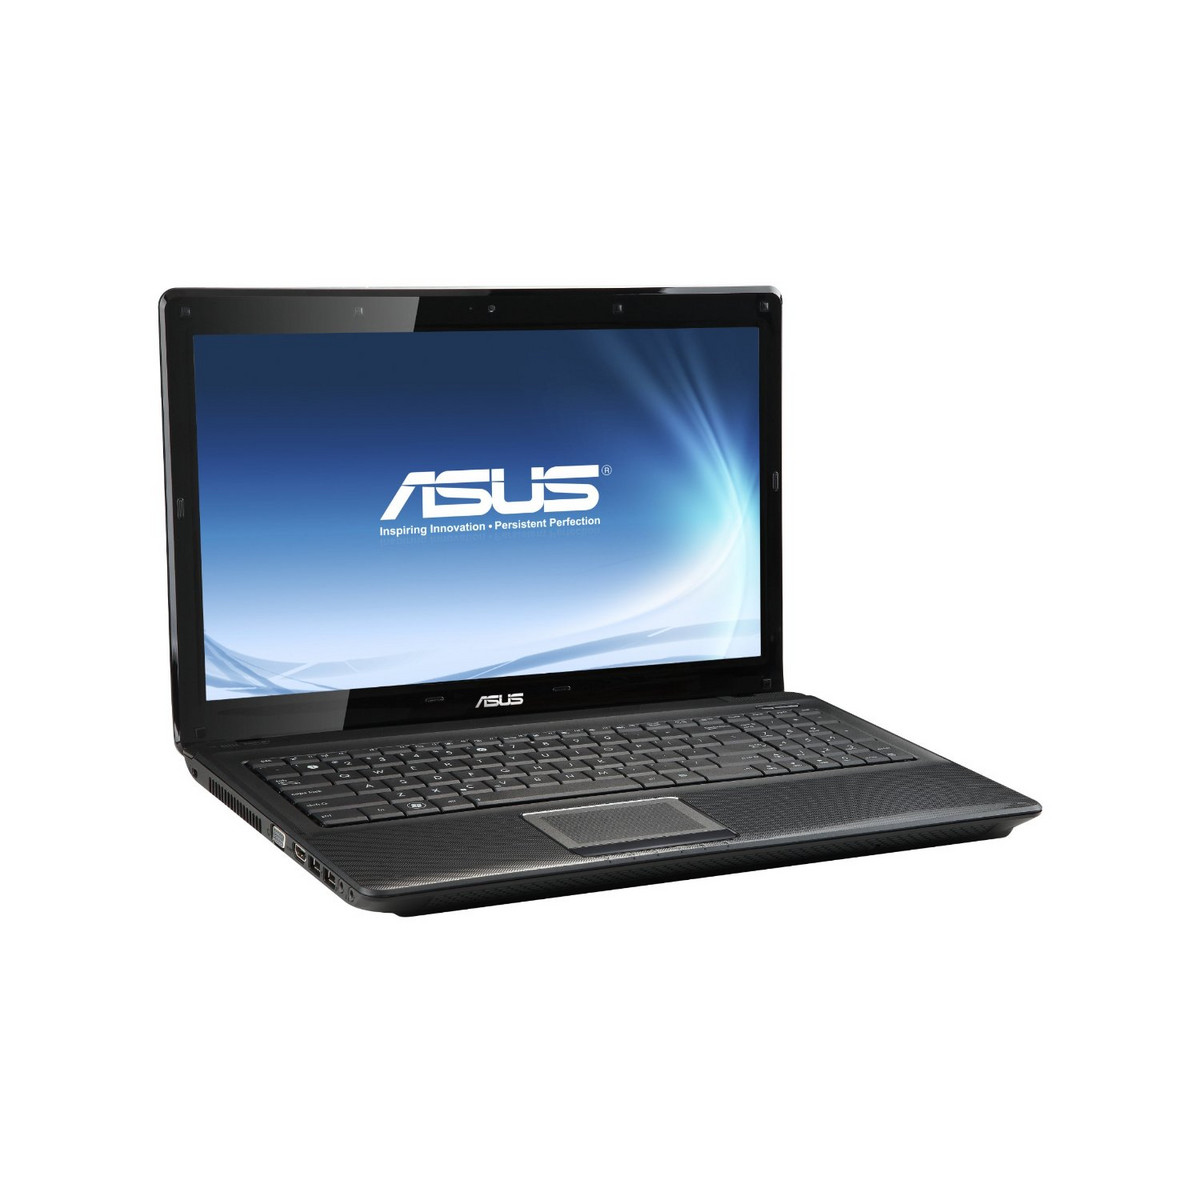 ASUS K52JU NOTEBOOK TURBO BOOST DRIVERS FOR WINDOWS 7